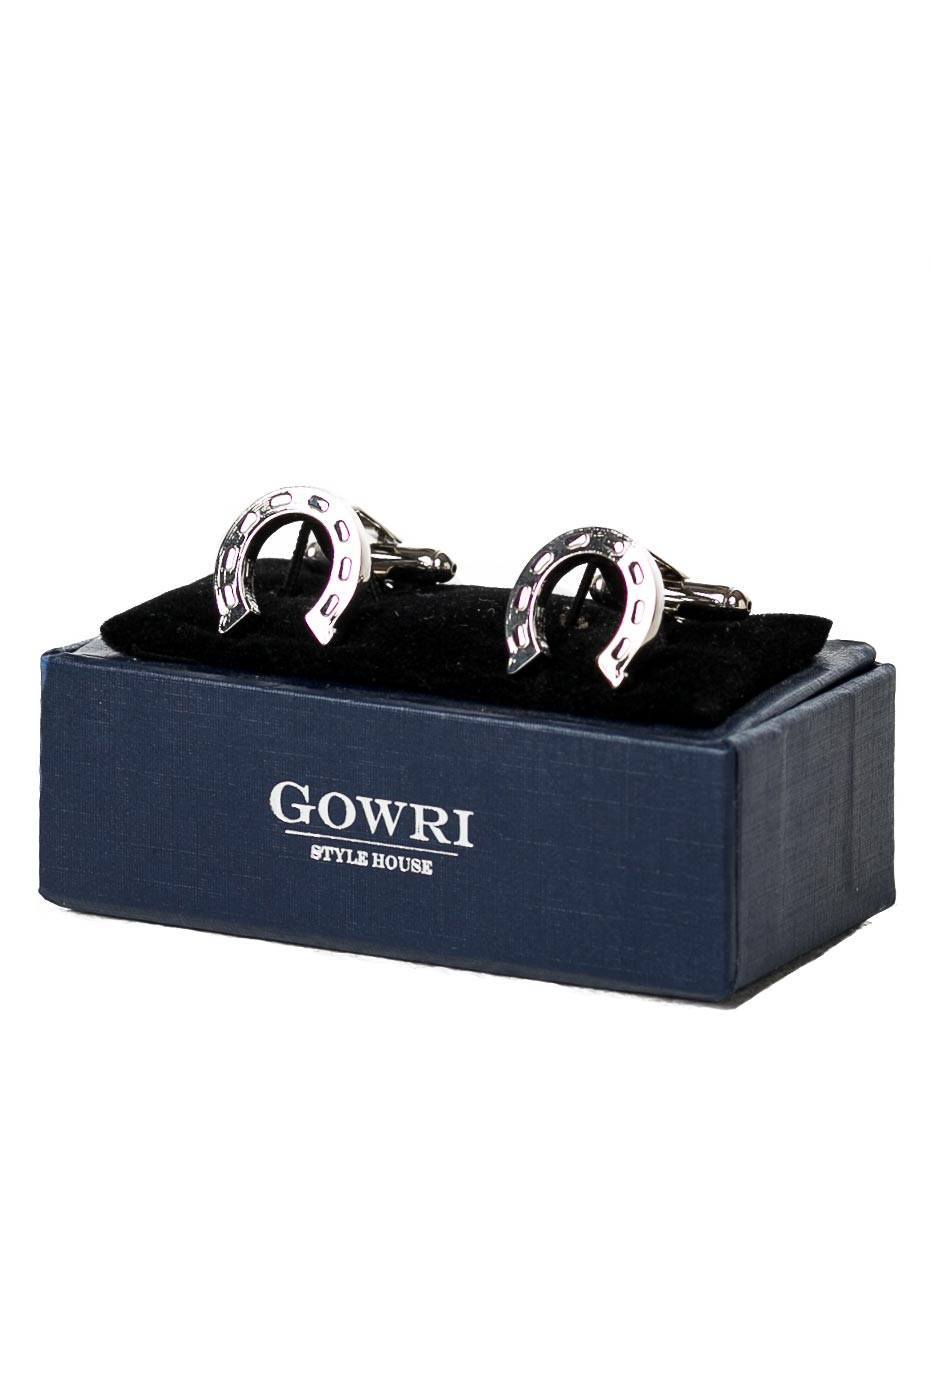 Horseshoe-shaped Cufflinks